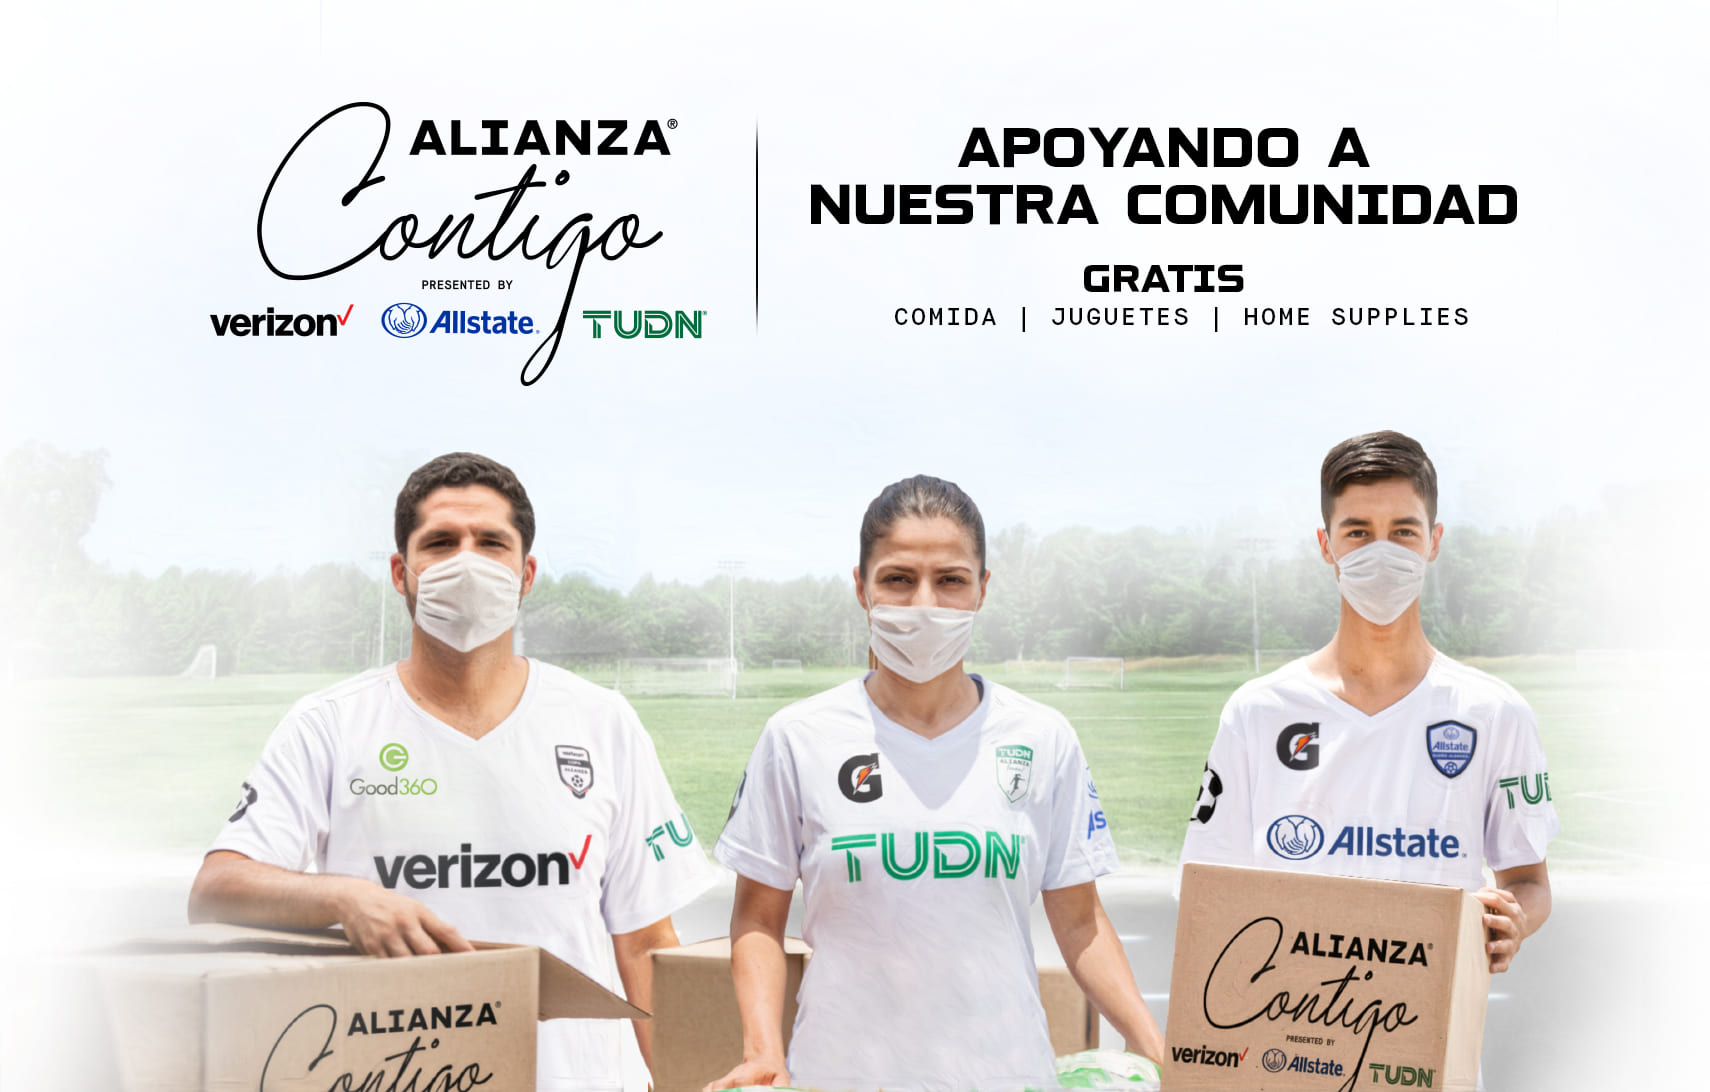 Alianza Contigo, supporting the hispanic community in the USA